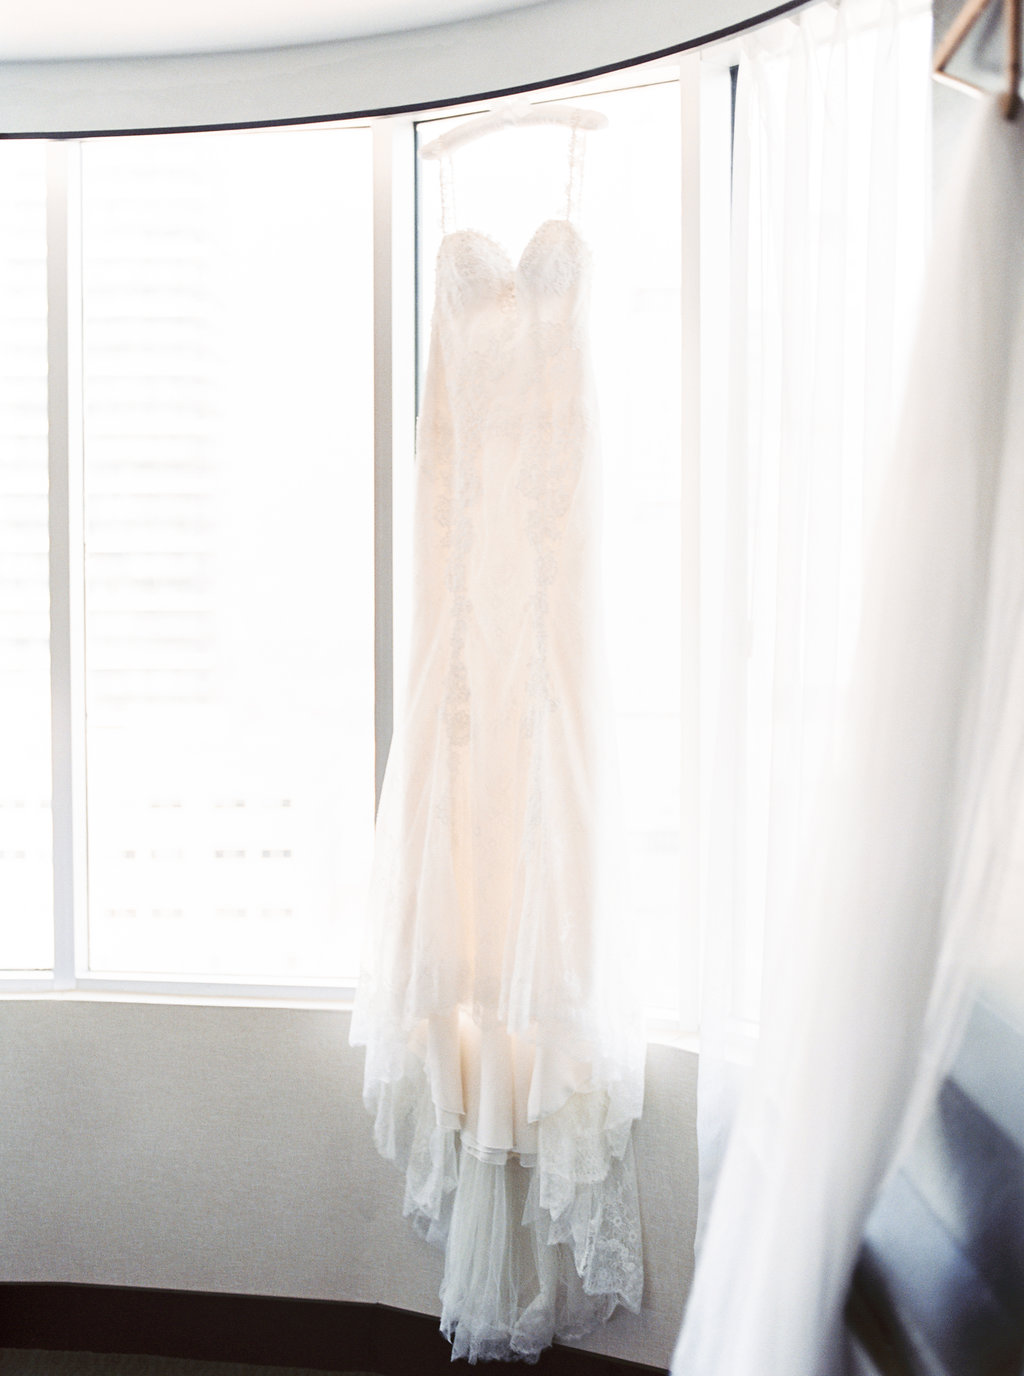 Lace wedding dress hanging in window.